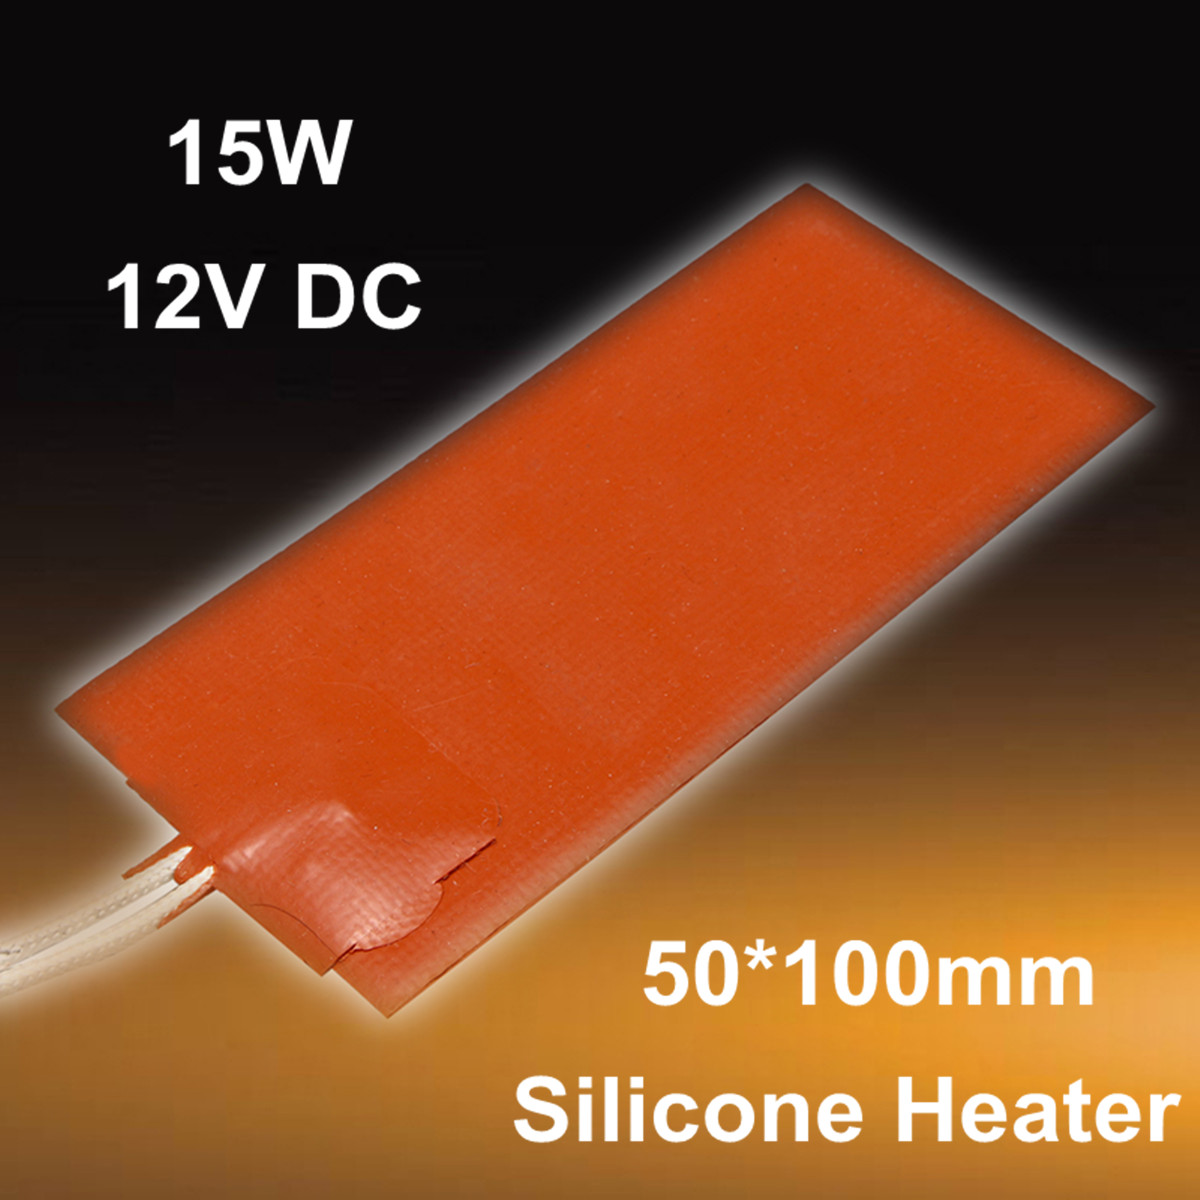 12 V DC 15W Flexible Waterproof Silicone Heating Pads Hydraulic Water Tank Mats For 3D Printer Heat Bed 100x50mm